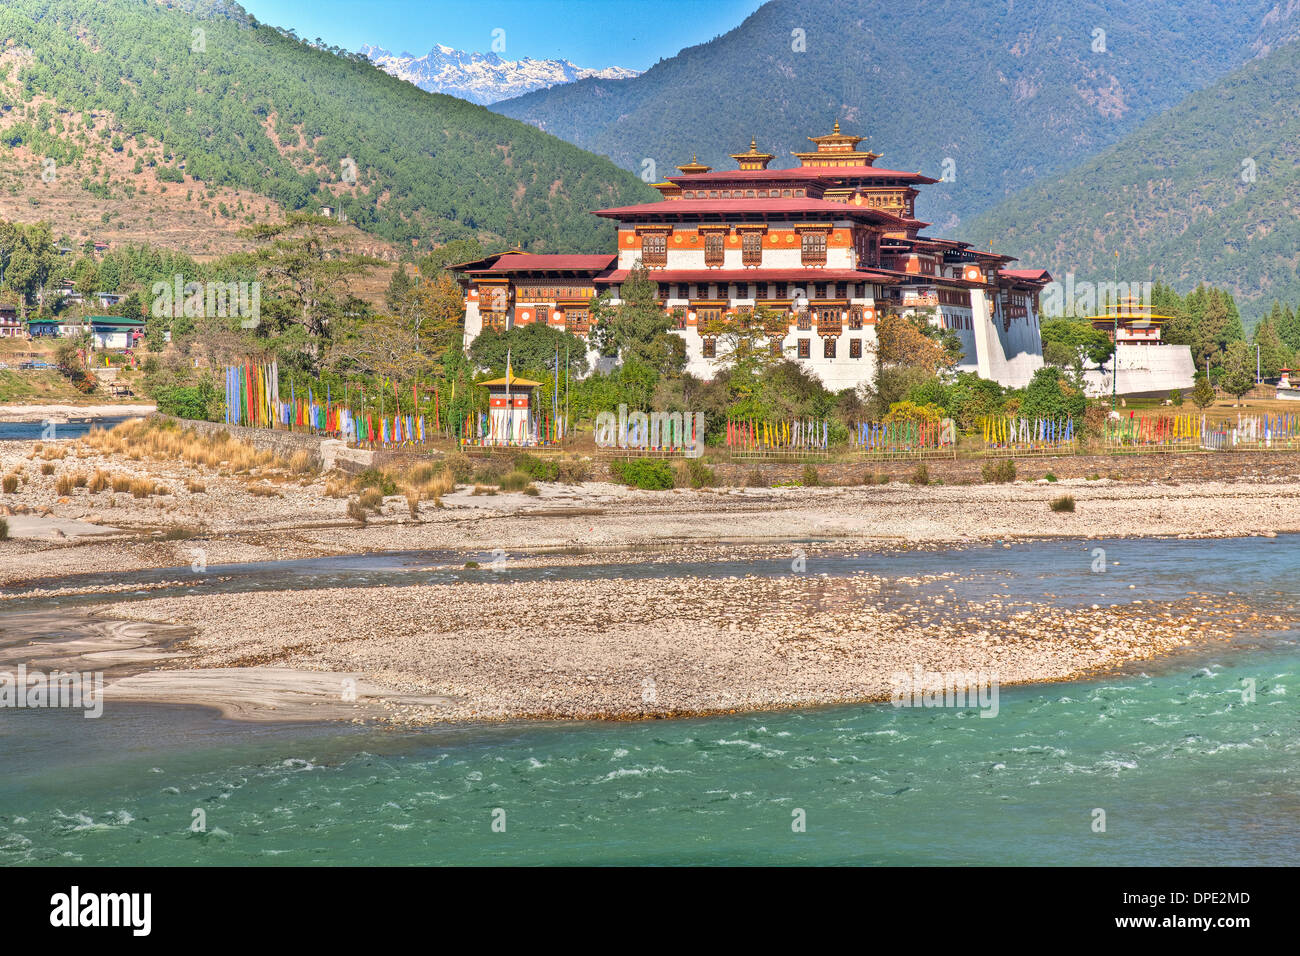 Punakha Dzong Monastery Bhutan Himalayan Mountains Built originally in 1300s Sacred site for Bhutanese people on Stock Photo